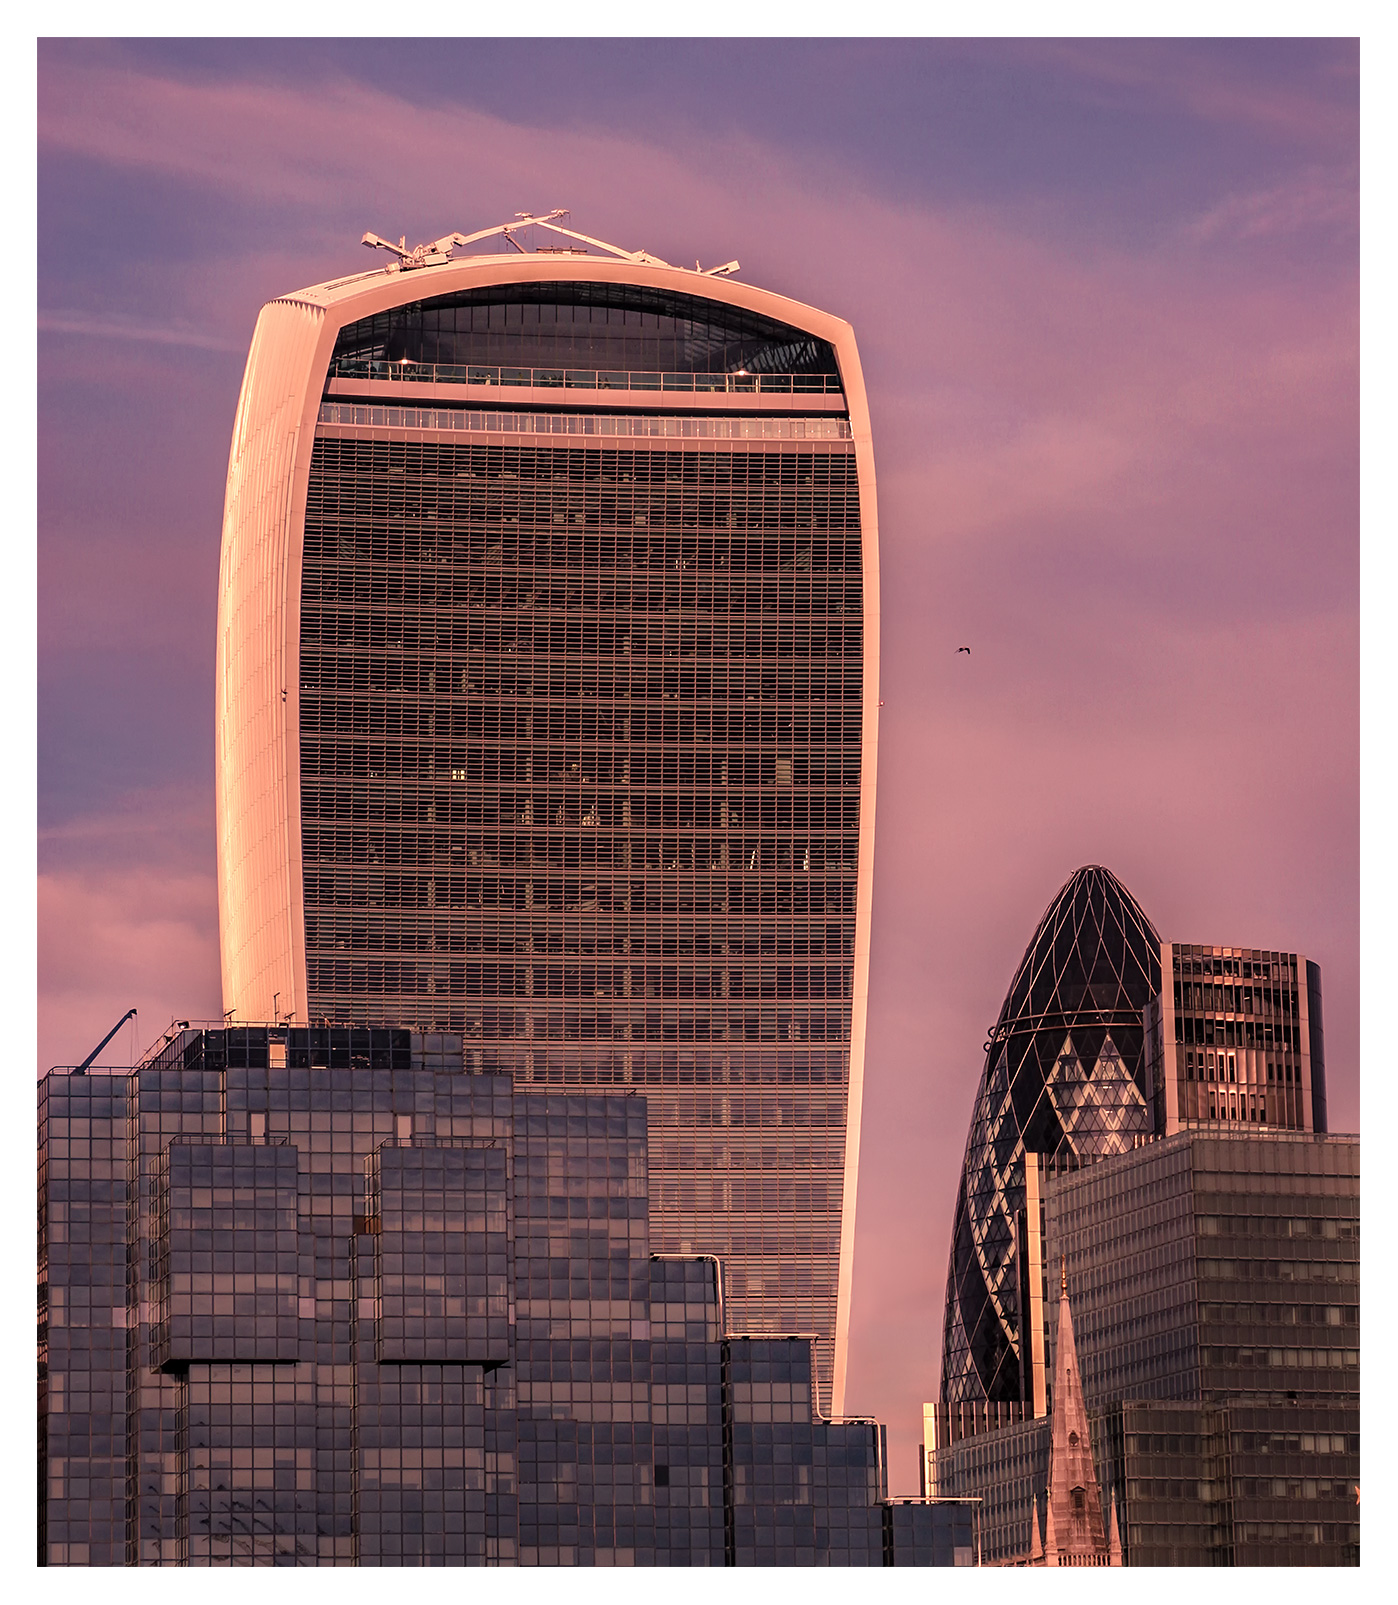 City of London Architecture, the Walkie Talkie building at sunset, 20 Fenchurch Street